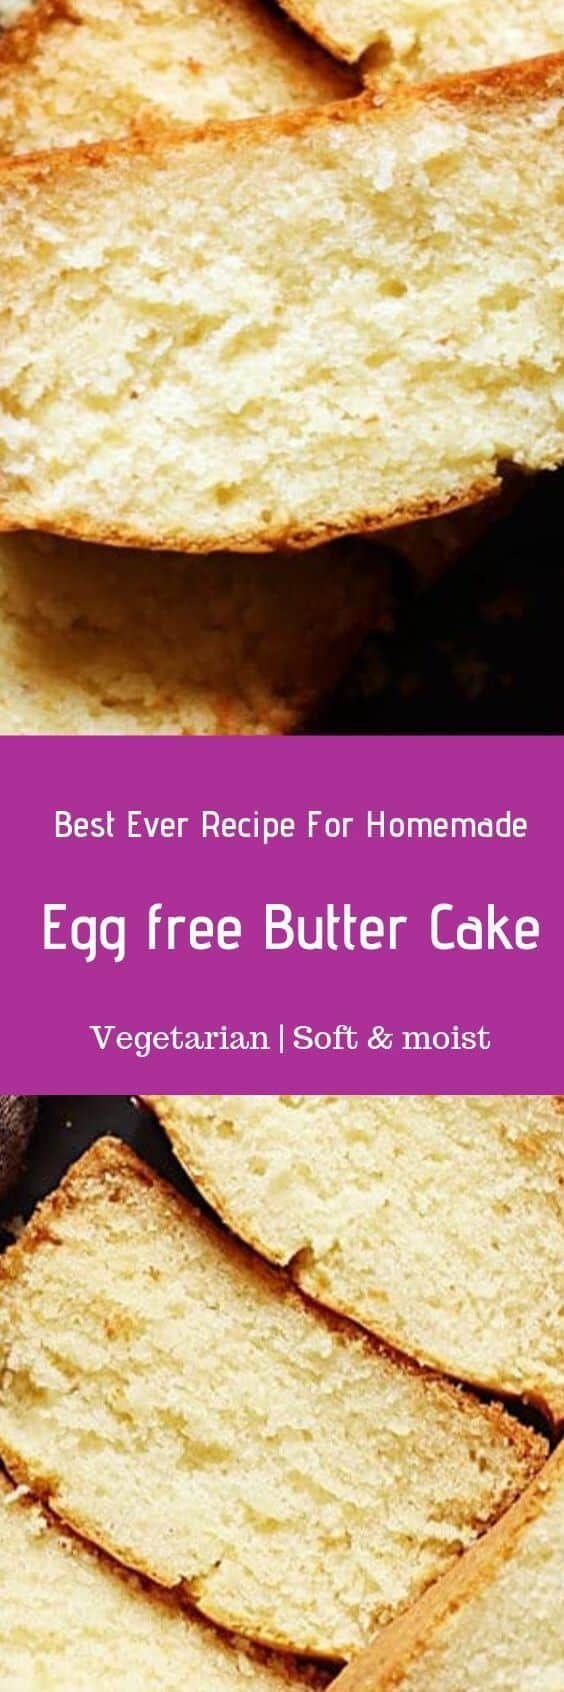 Eggless butter cake recipe for most delicious, flavorful ...